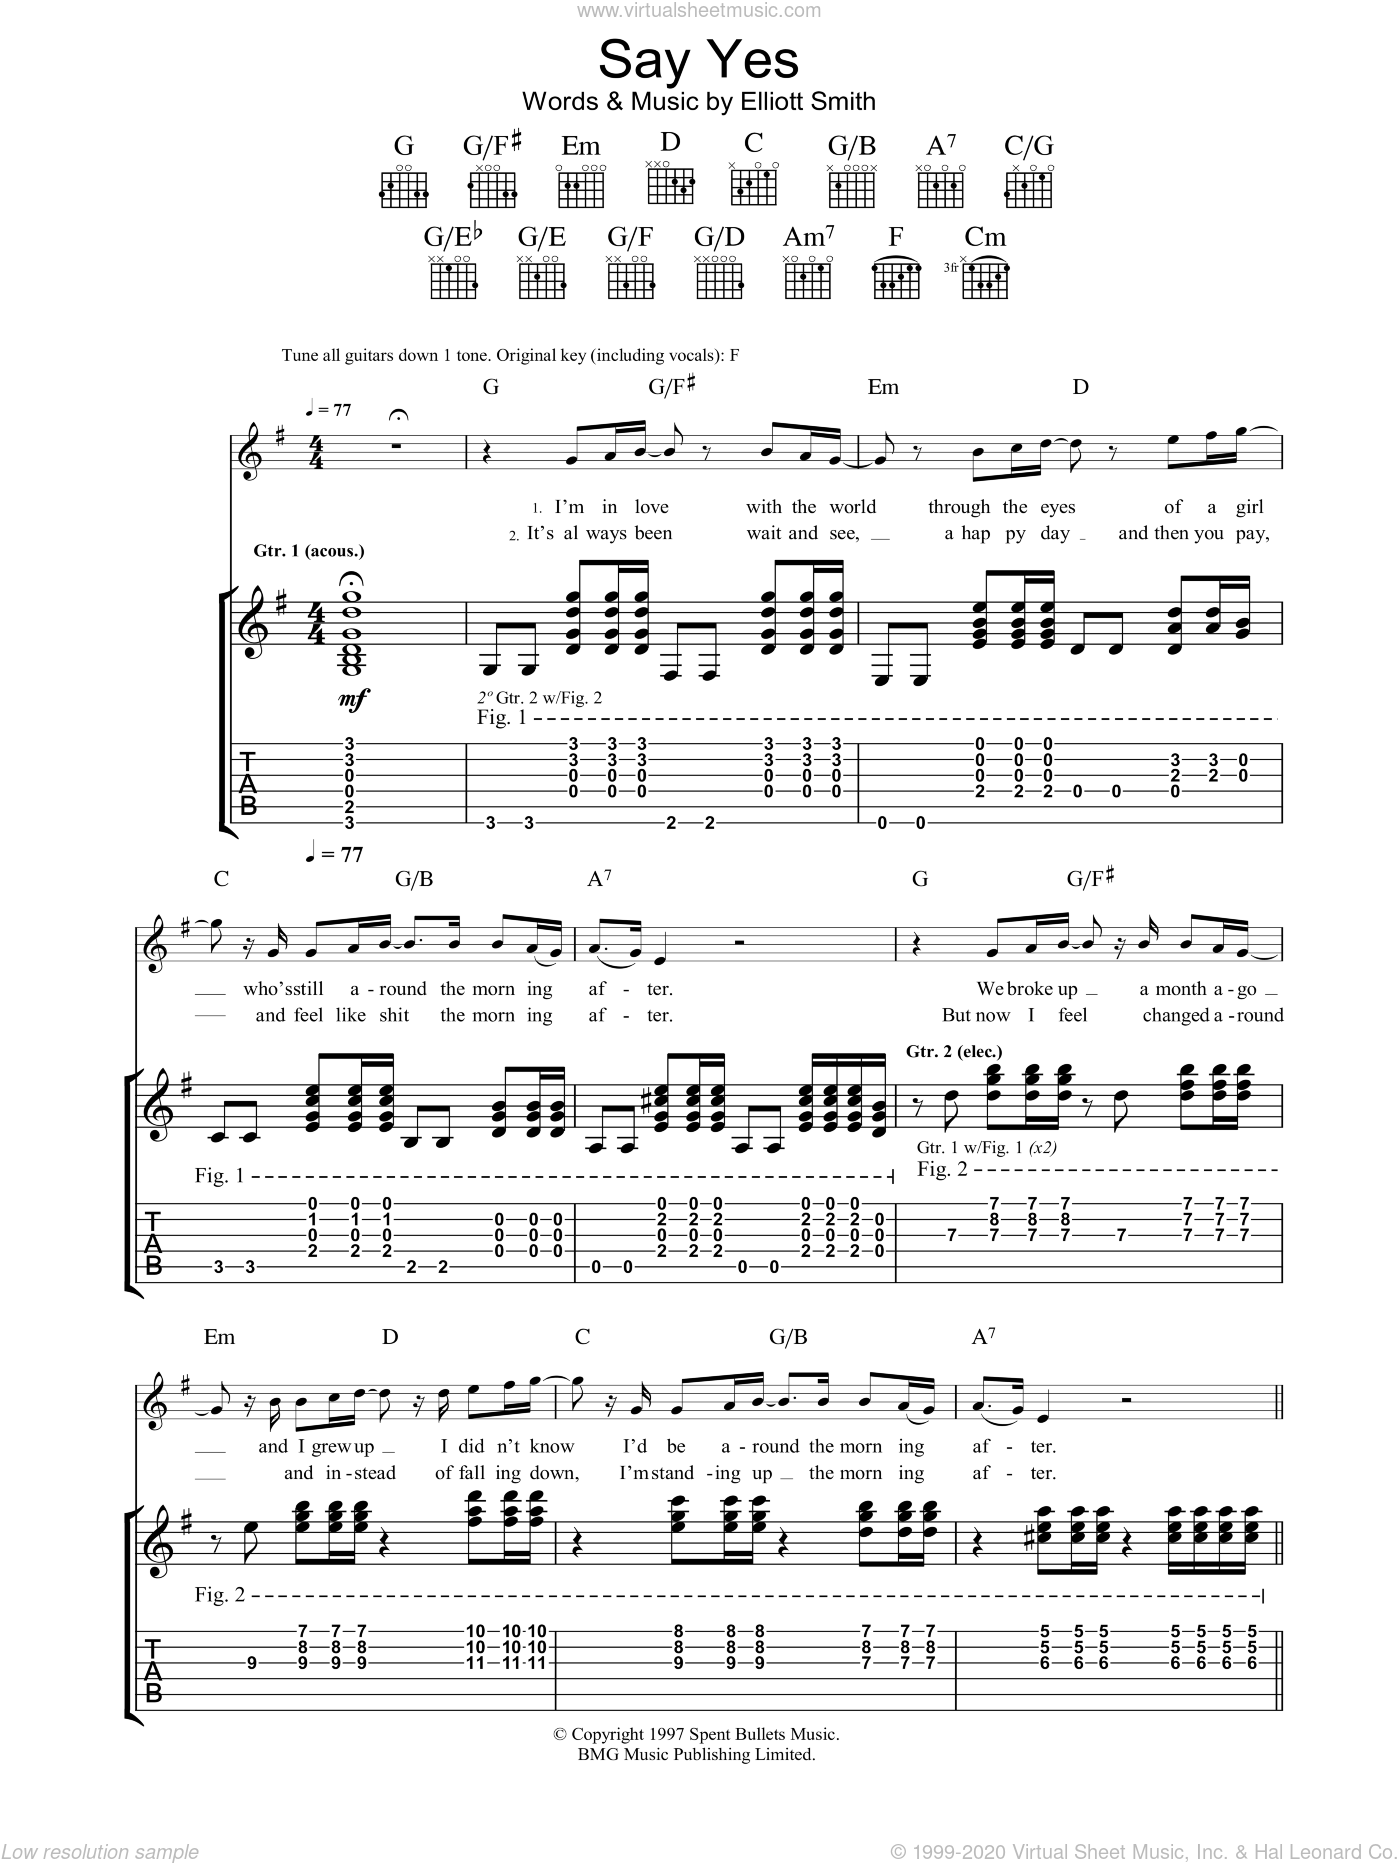 Say Yes sheet music for guitar (tablature) by Elliott Smith